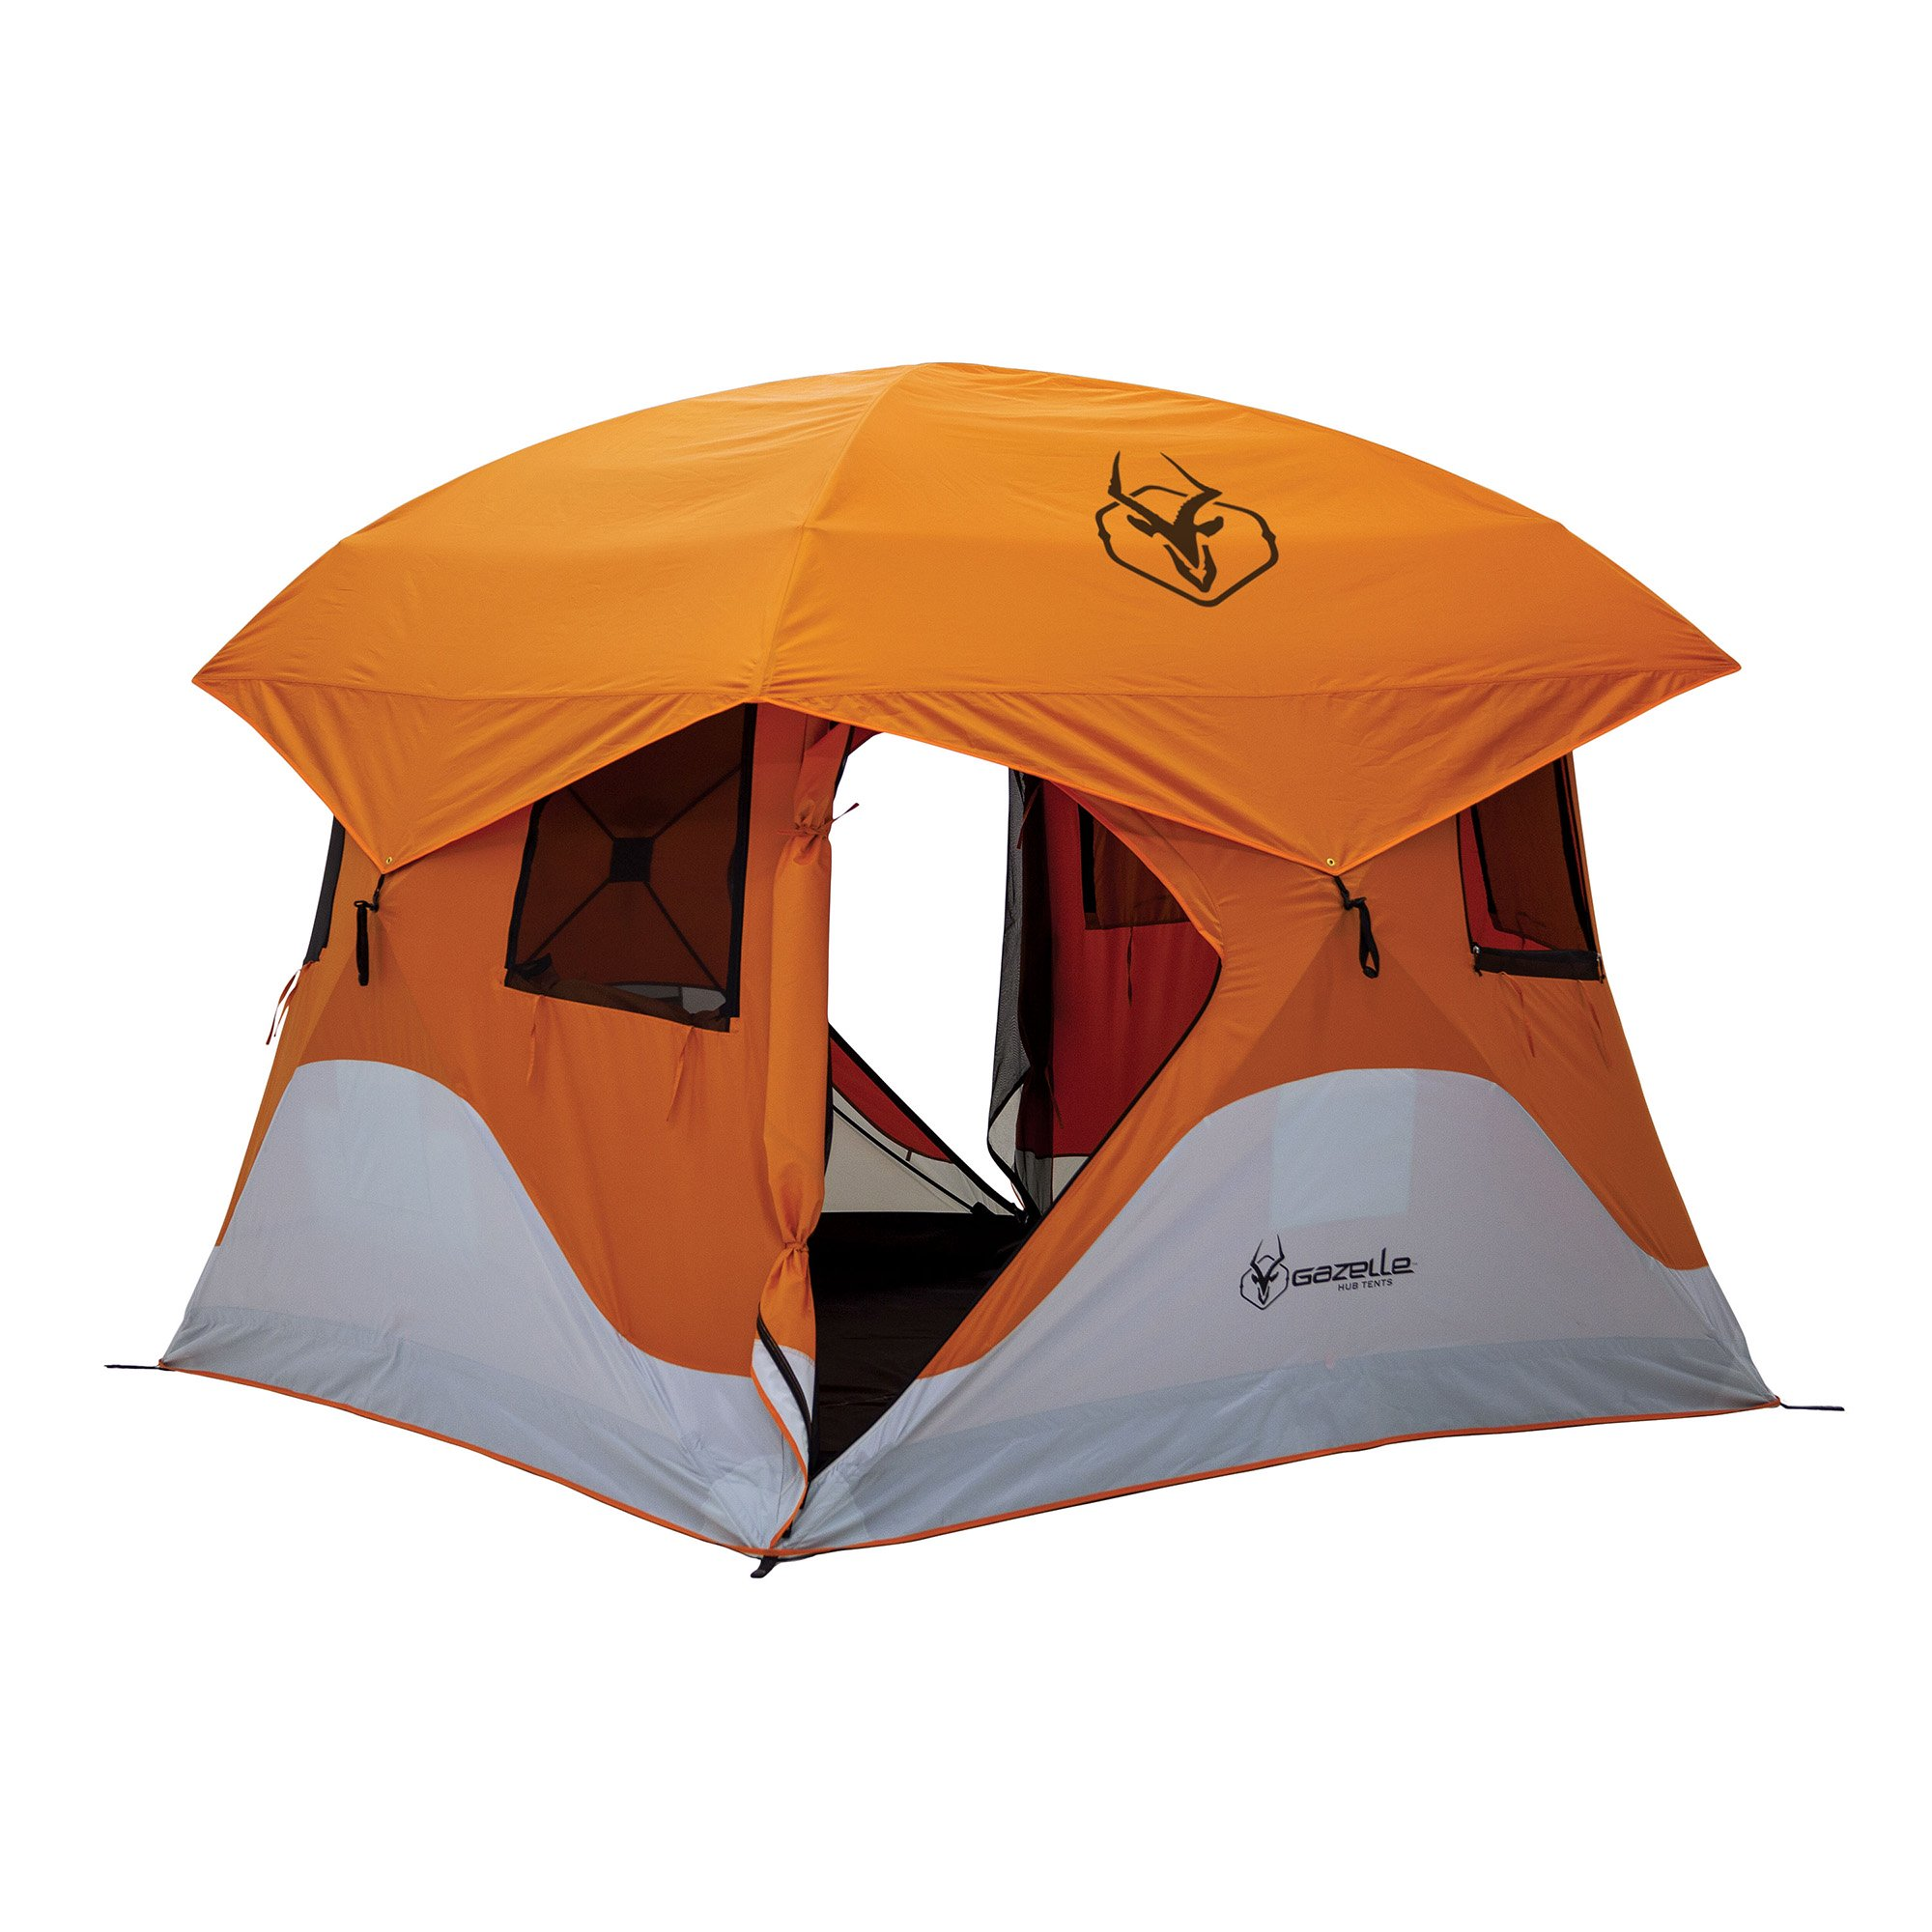 Gazelle T4 Pop-Up Portable Camping Hub Tent